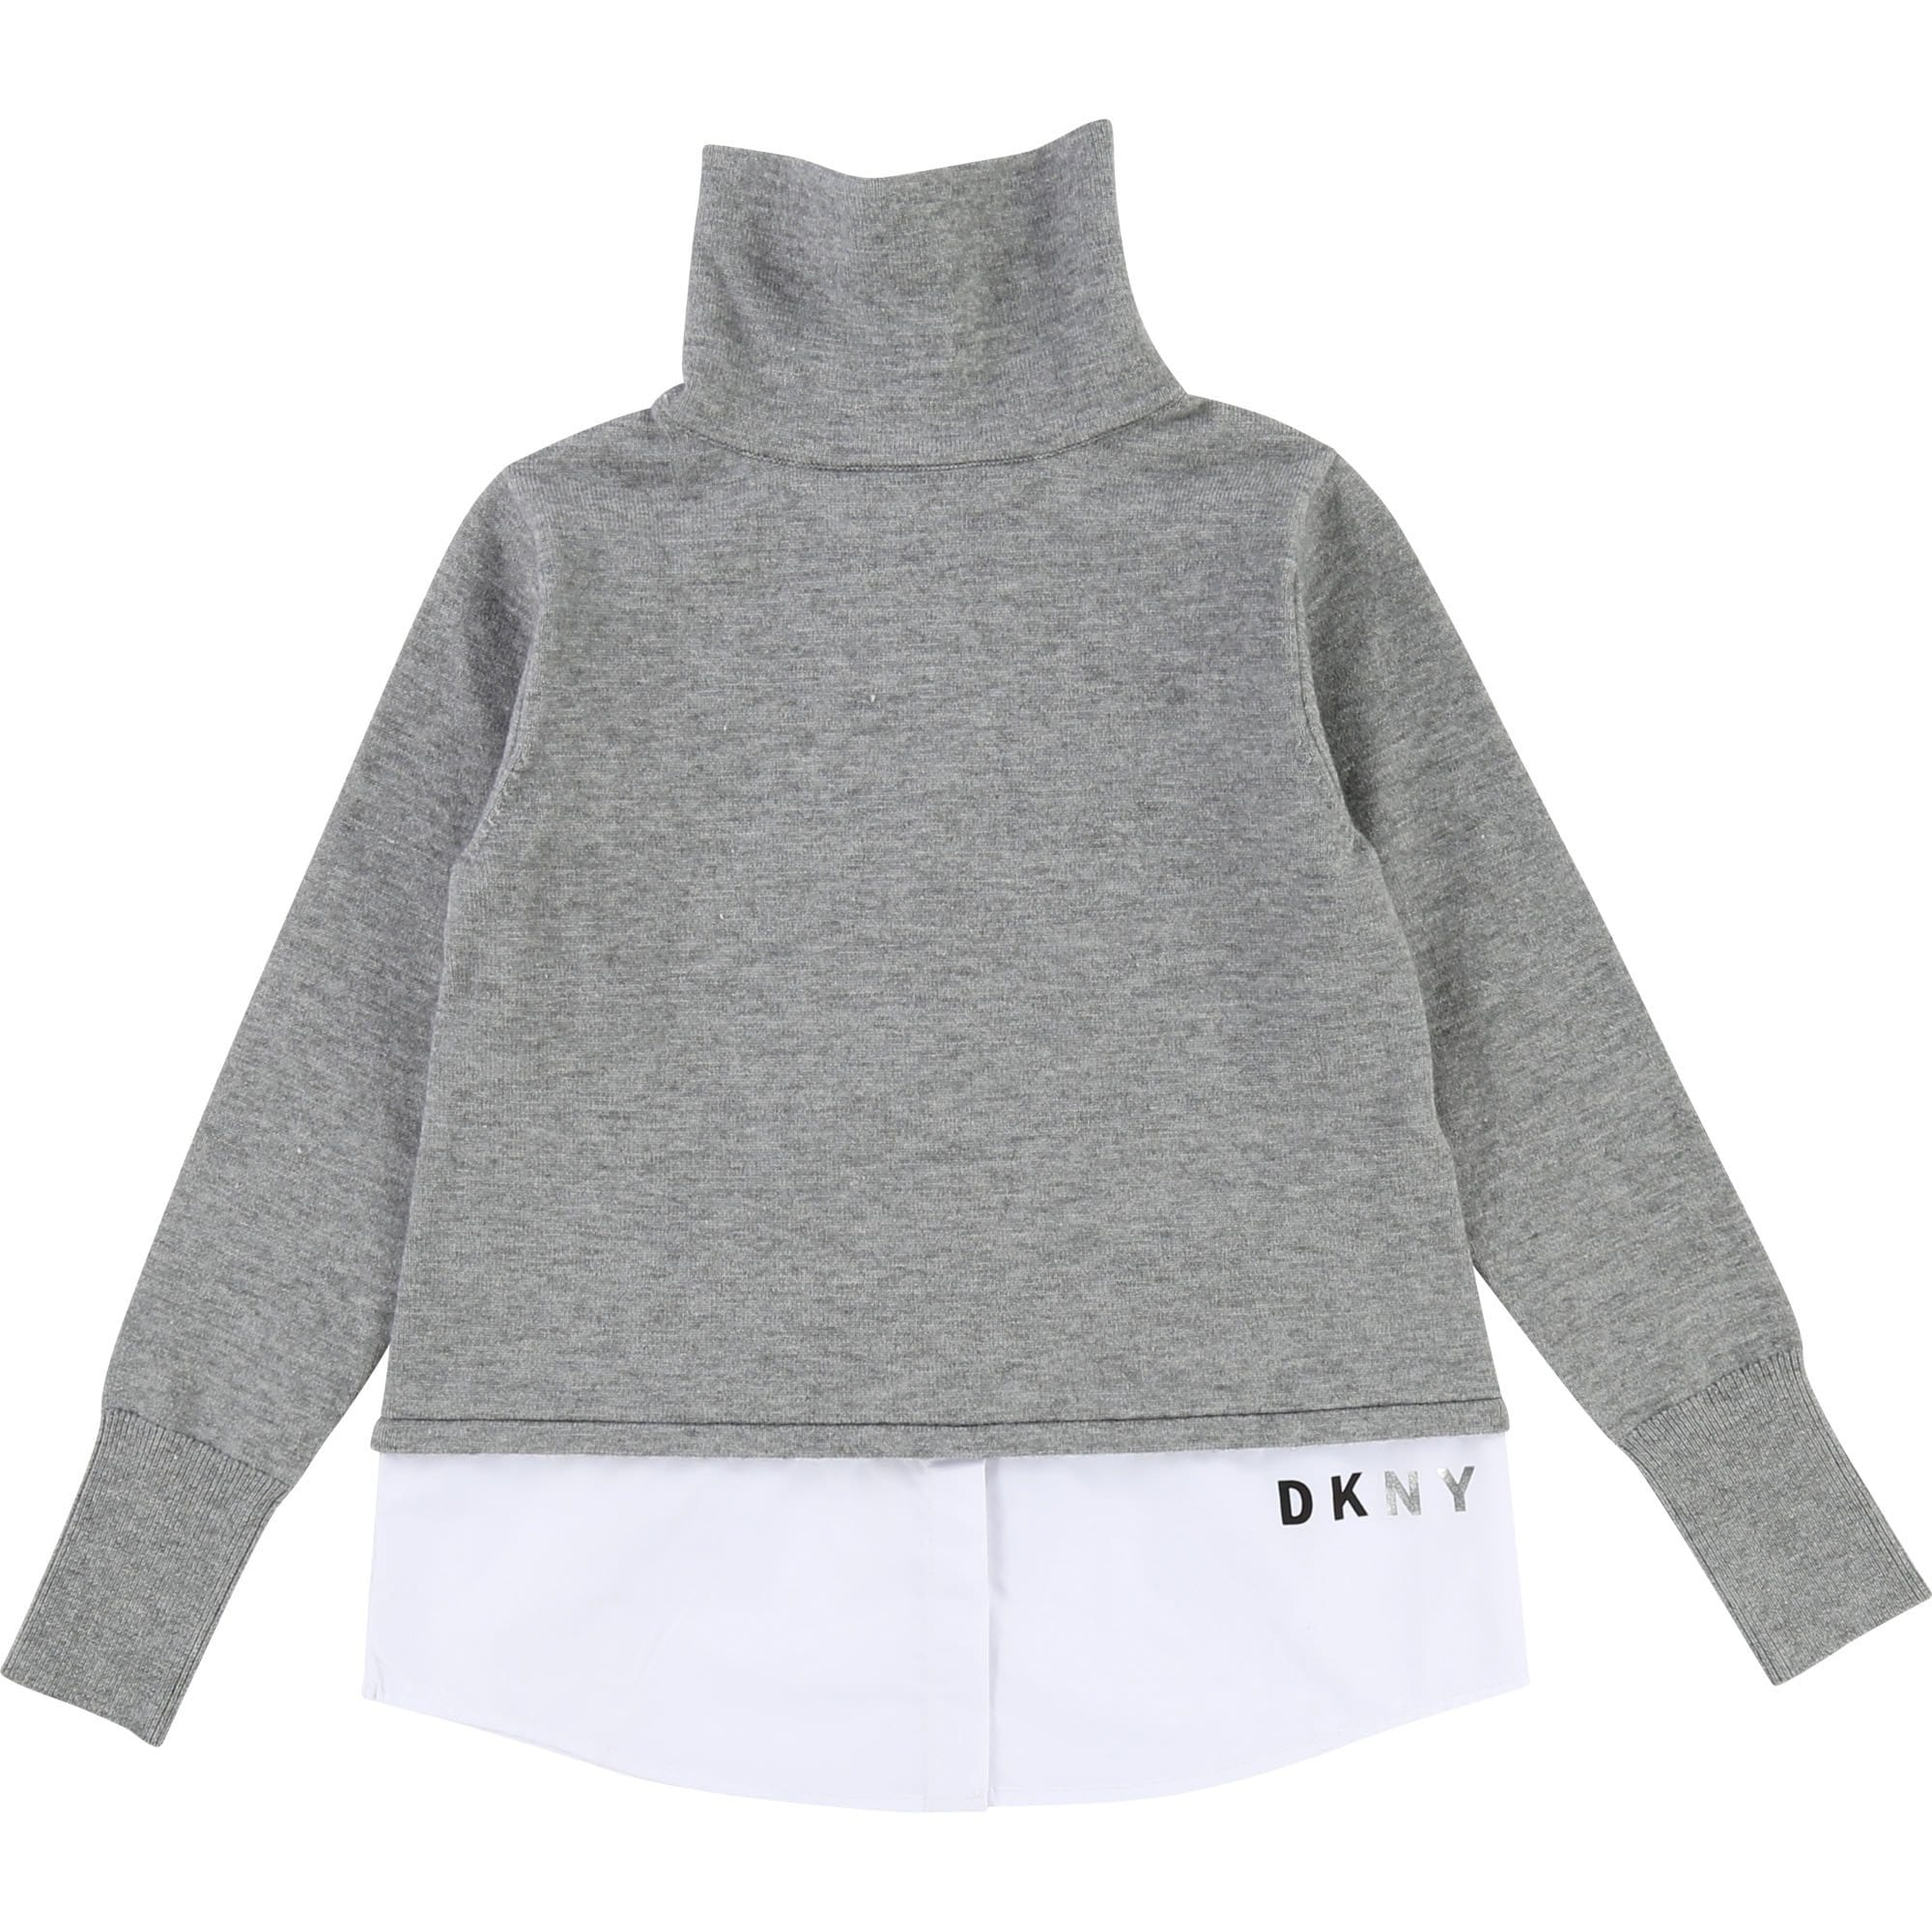 DKNY High Neck Layered Knit Jumper (4716695748739)